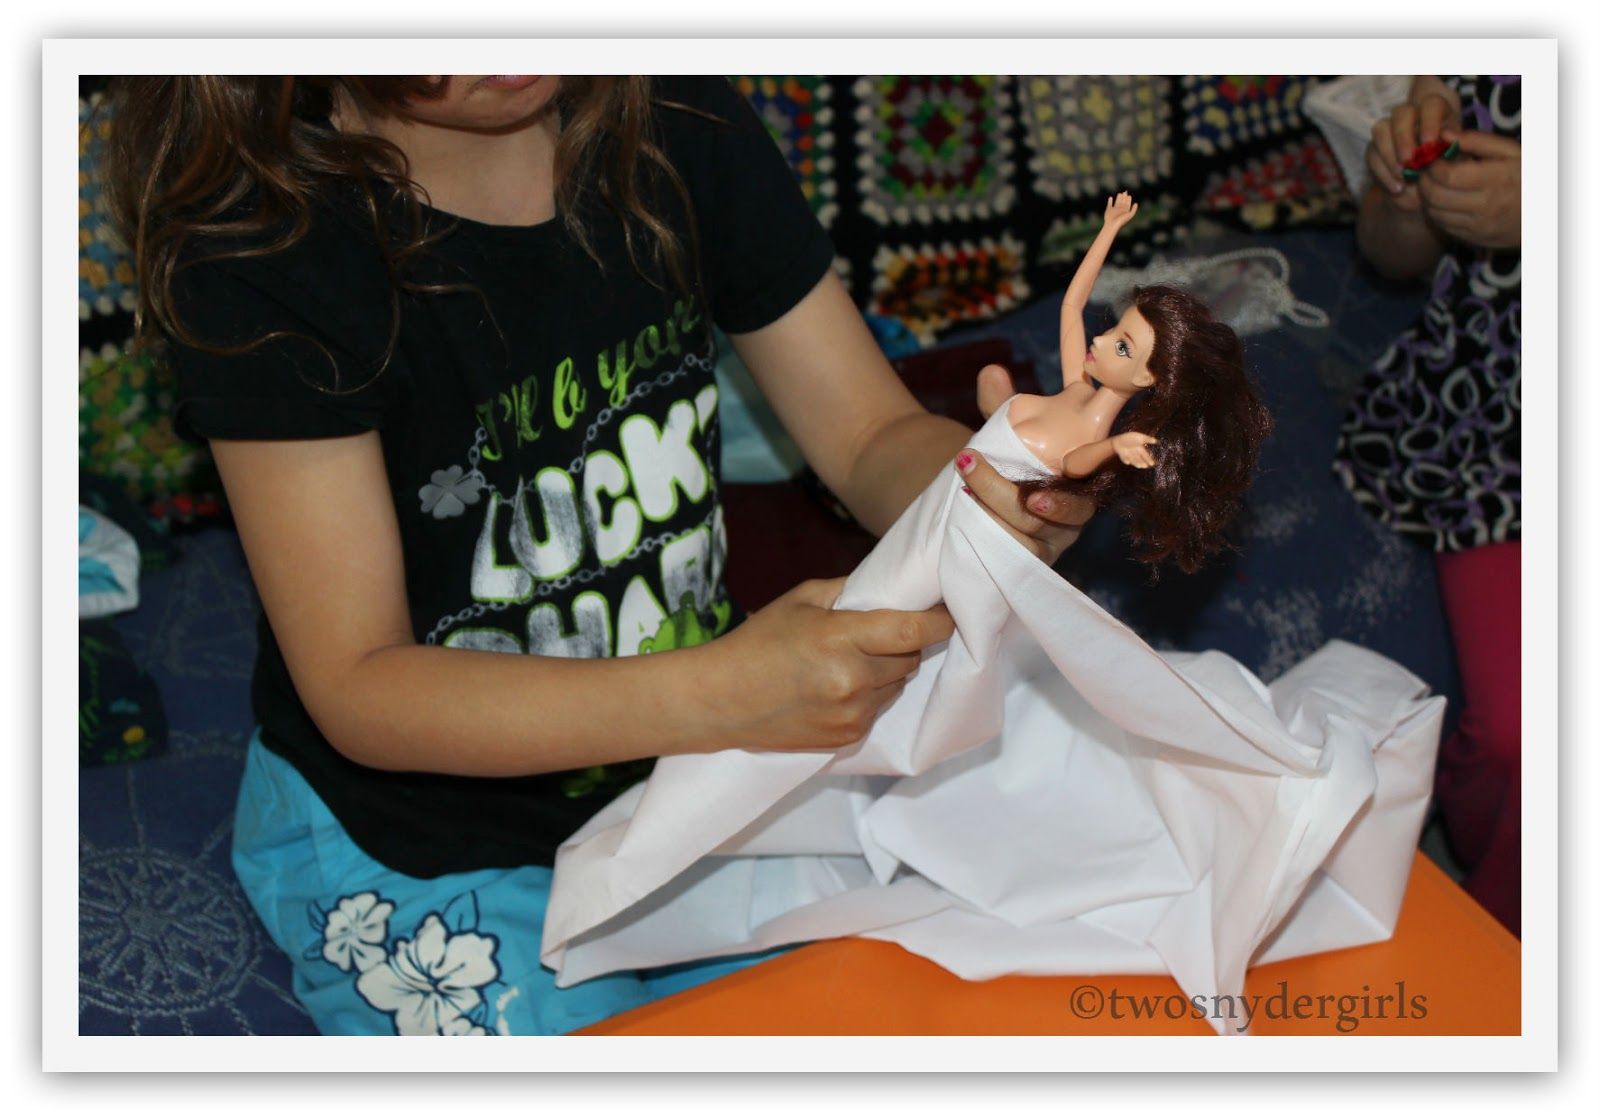 Draping white fabric around a Barbie Doll